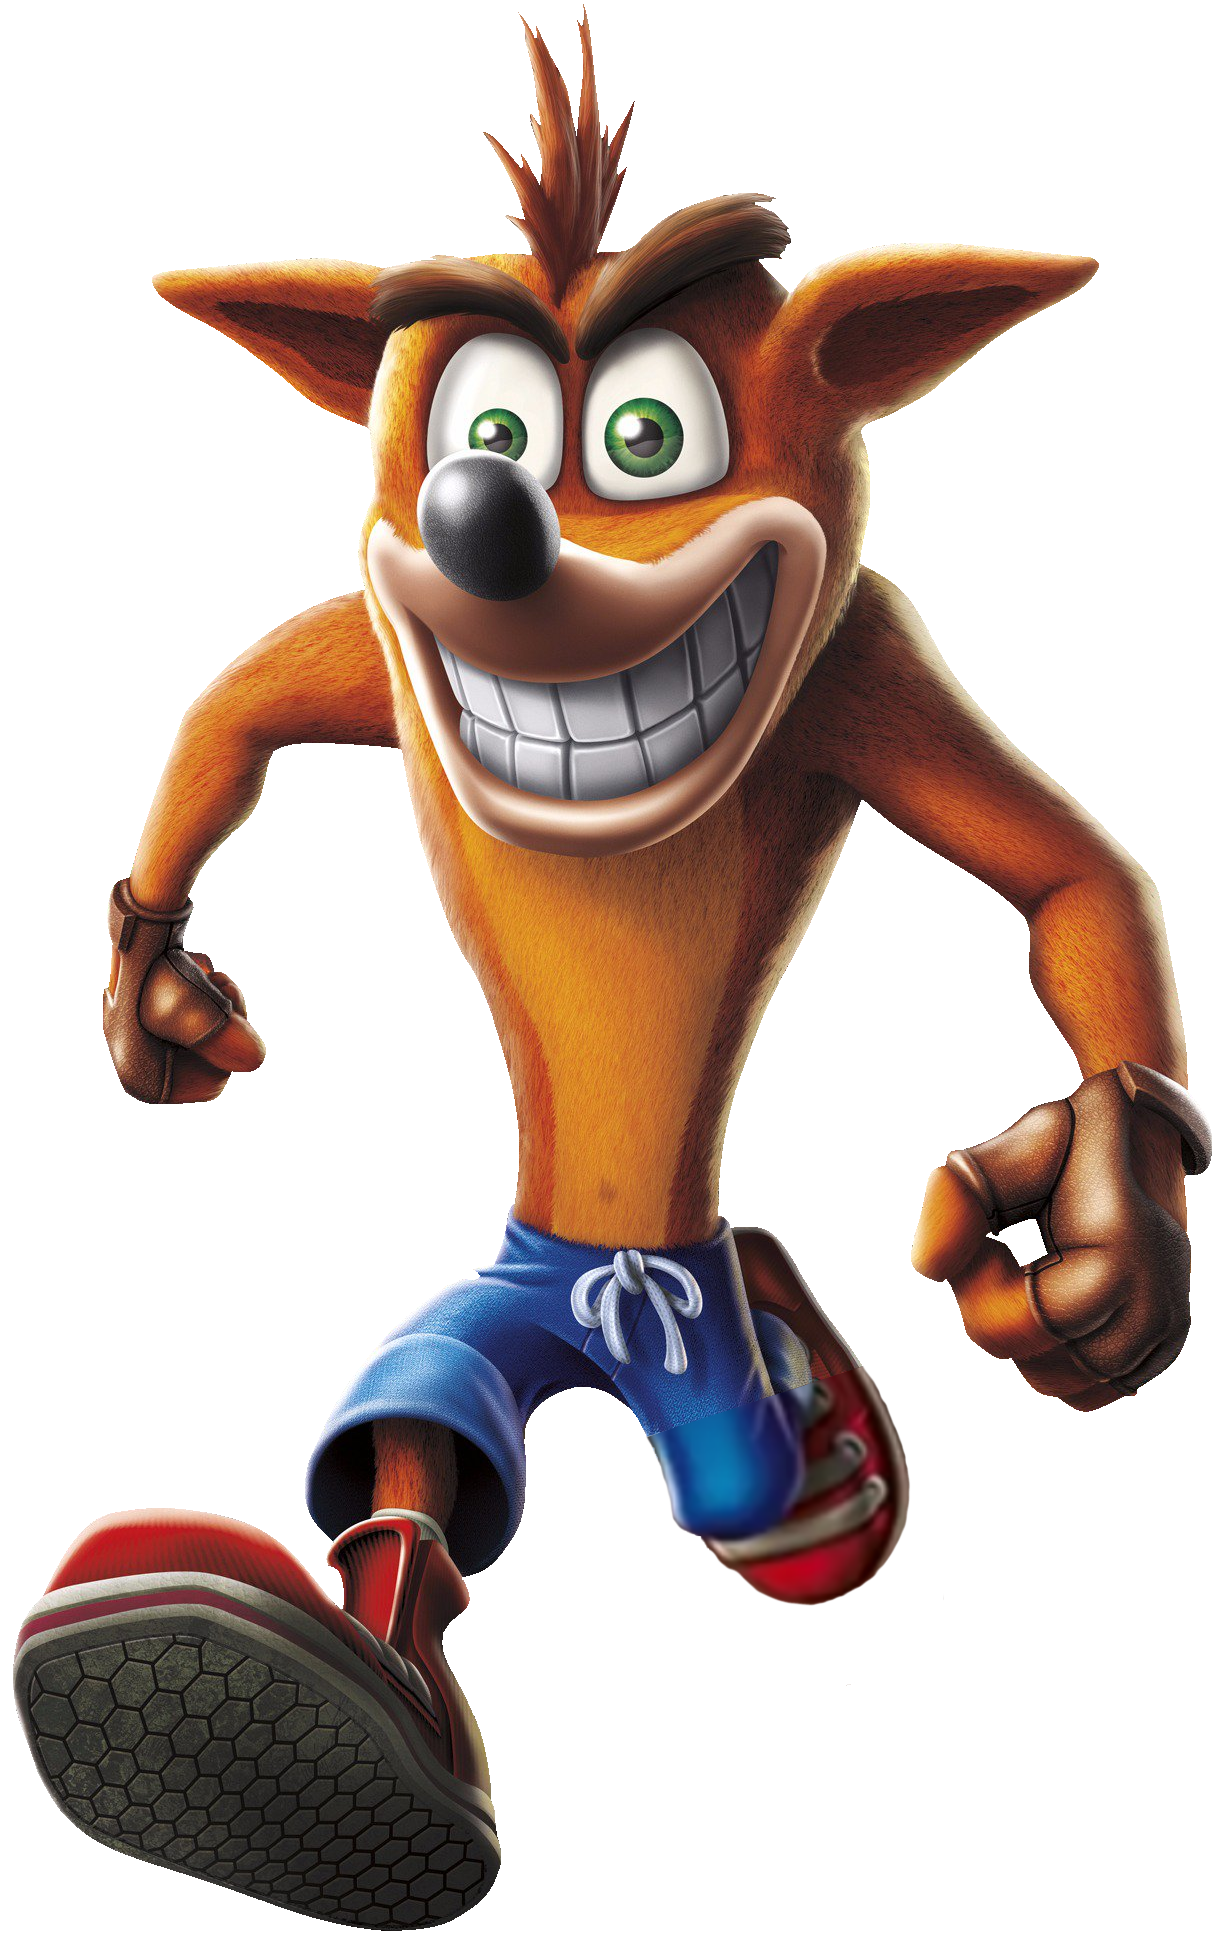 Crash Bandicoot 4 to Feature More Levels Than all of its